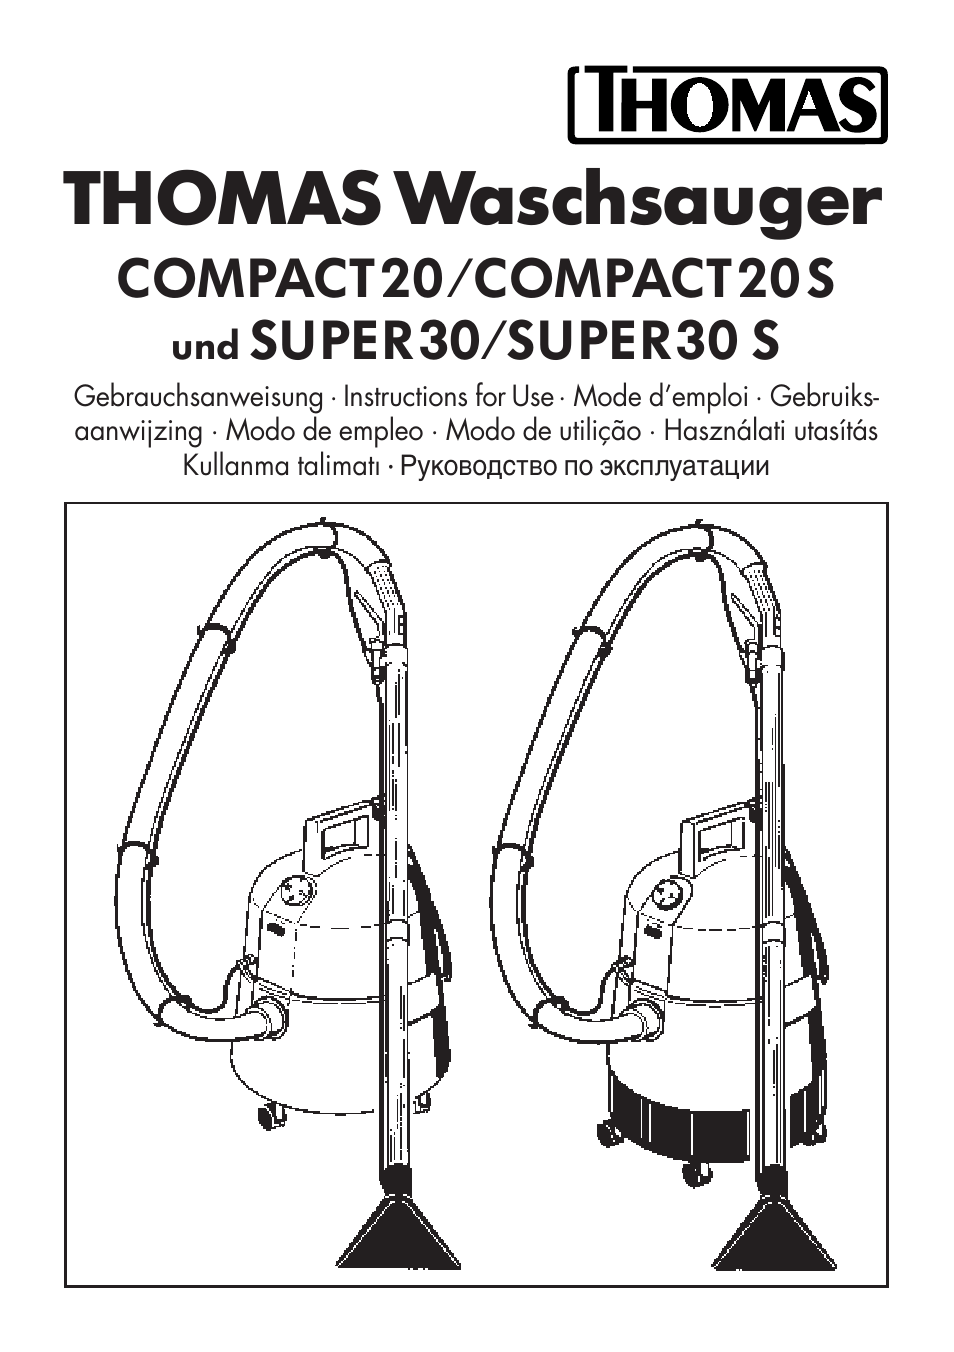 Thomas waschsauger, Compact20/compact20 s, Super30/super30